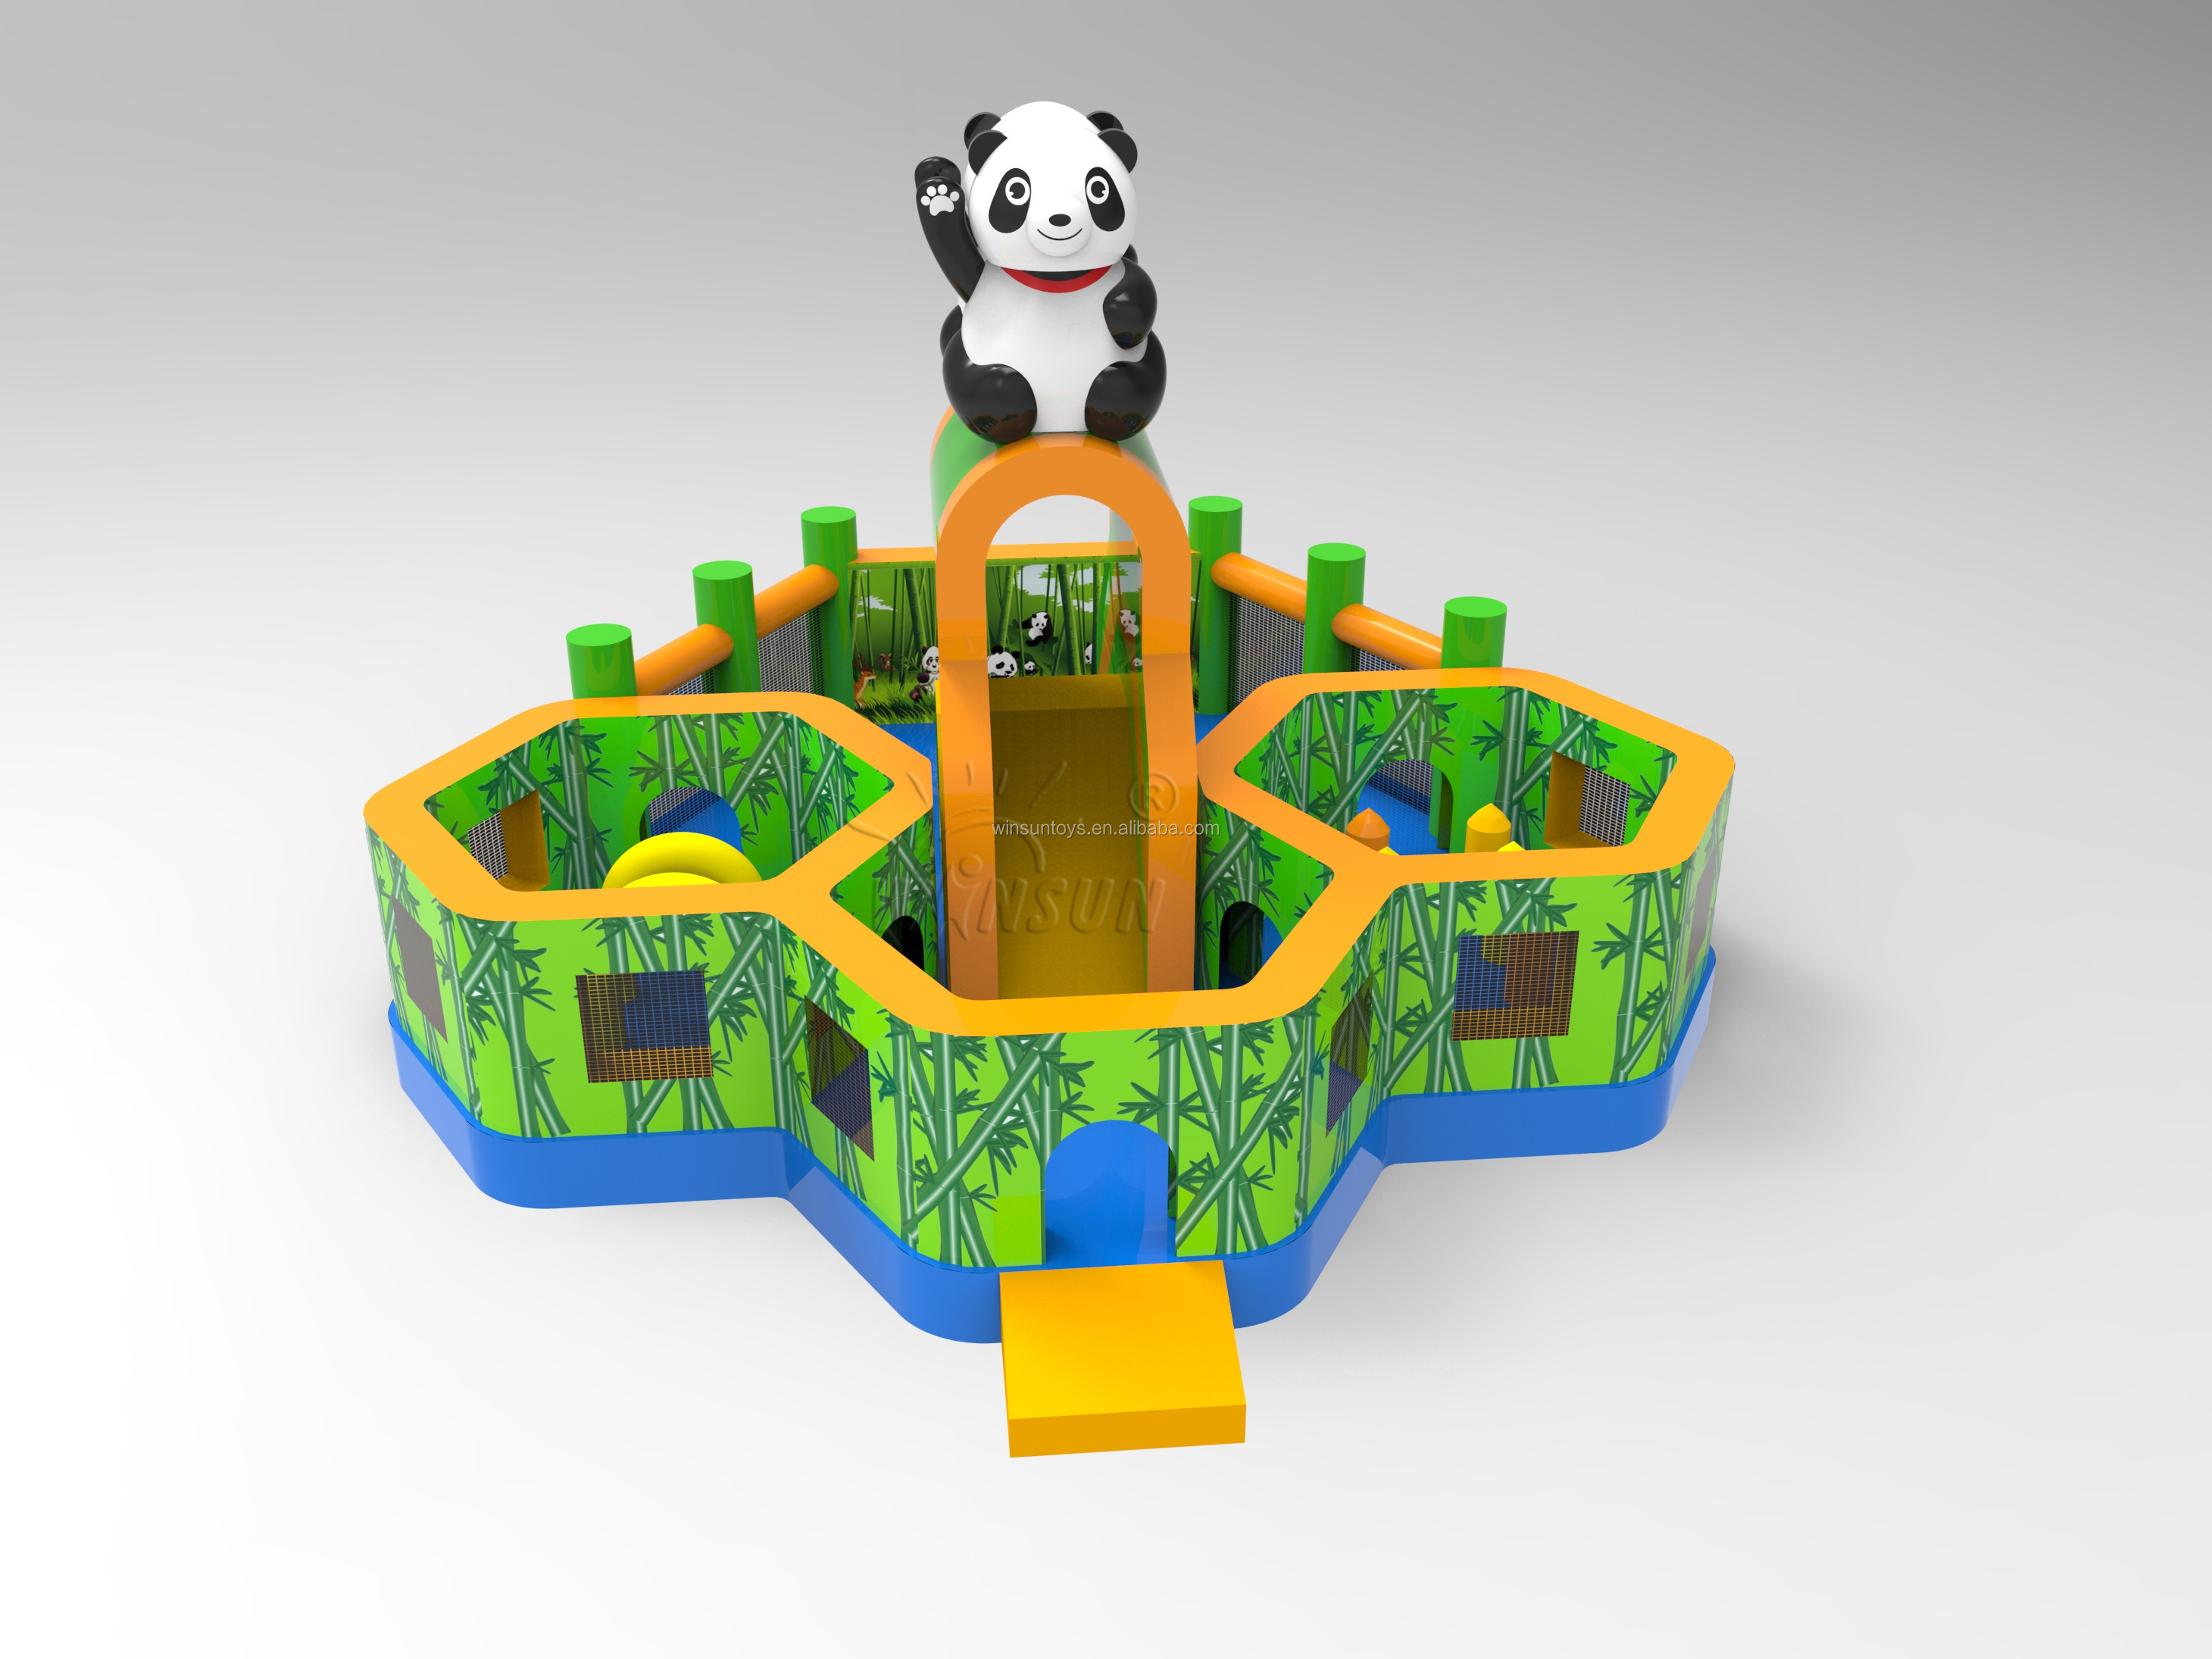 2019 New giant panda inflatable playground, panda inflatable bouncy castle for kids